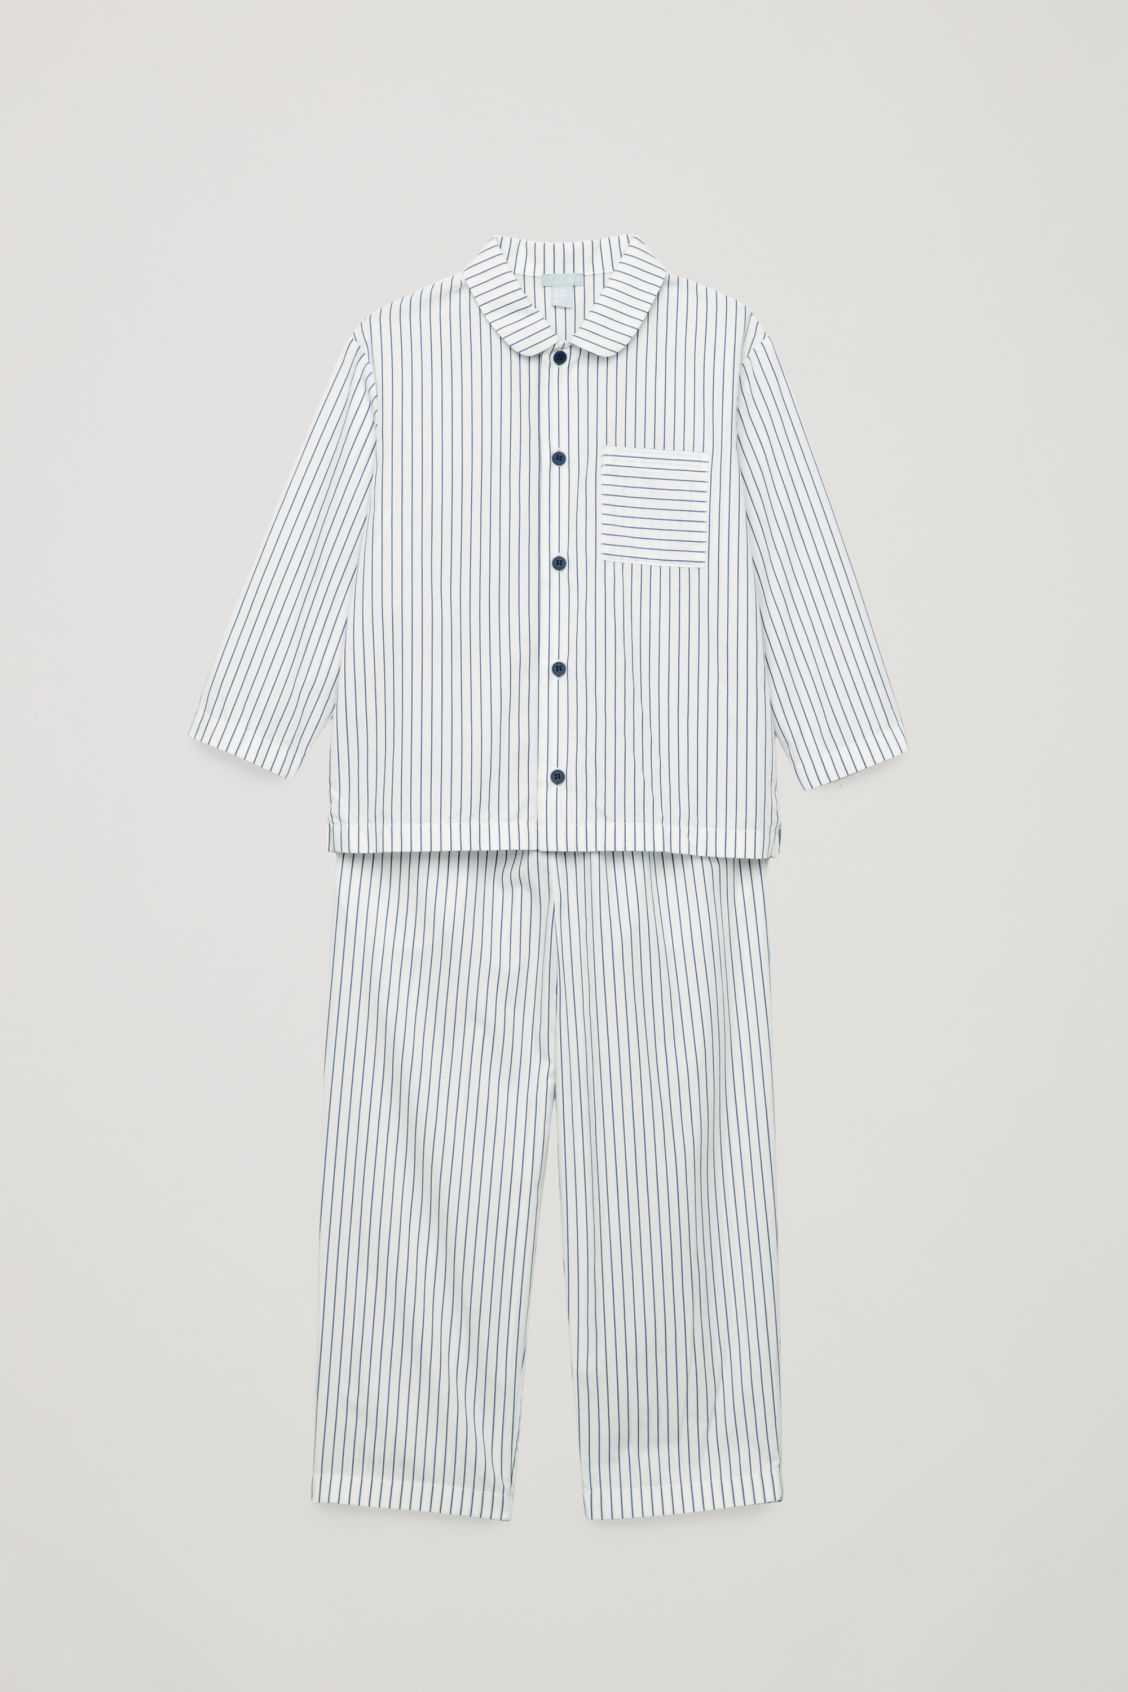 8a4935bb45c2 STRIPED PYJAMA SET - White   Navy - Boys - COS